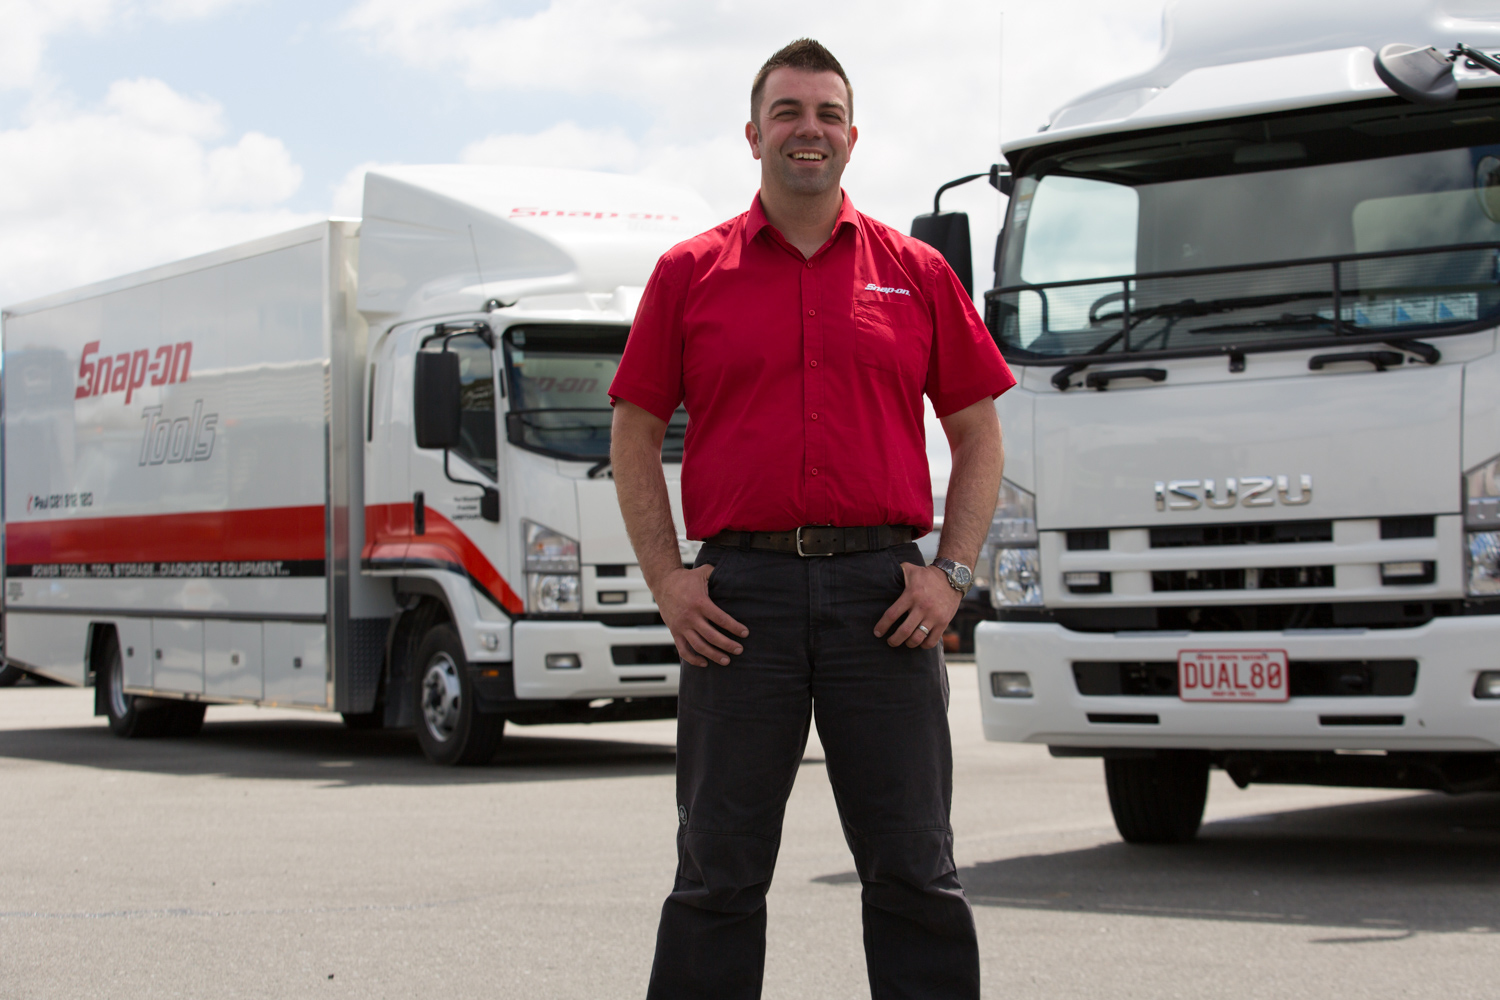 Snap-on Tools Franchise - Greater Canberra Opportunities